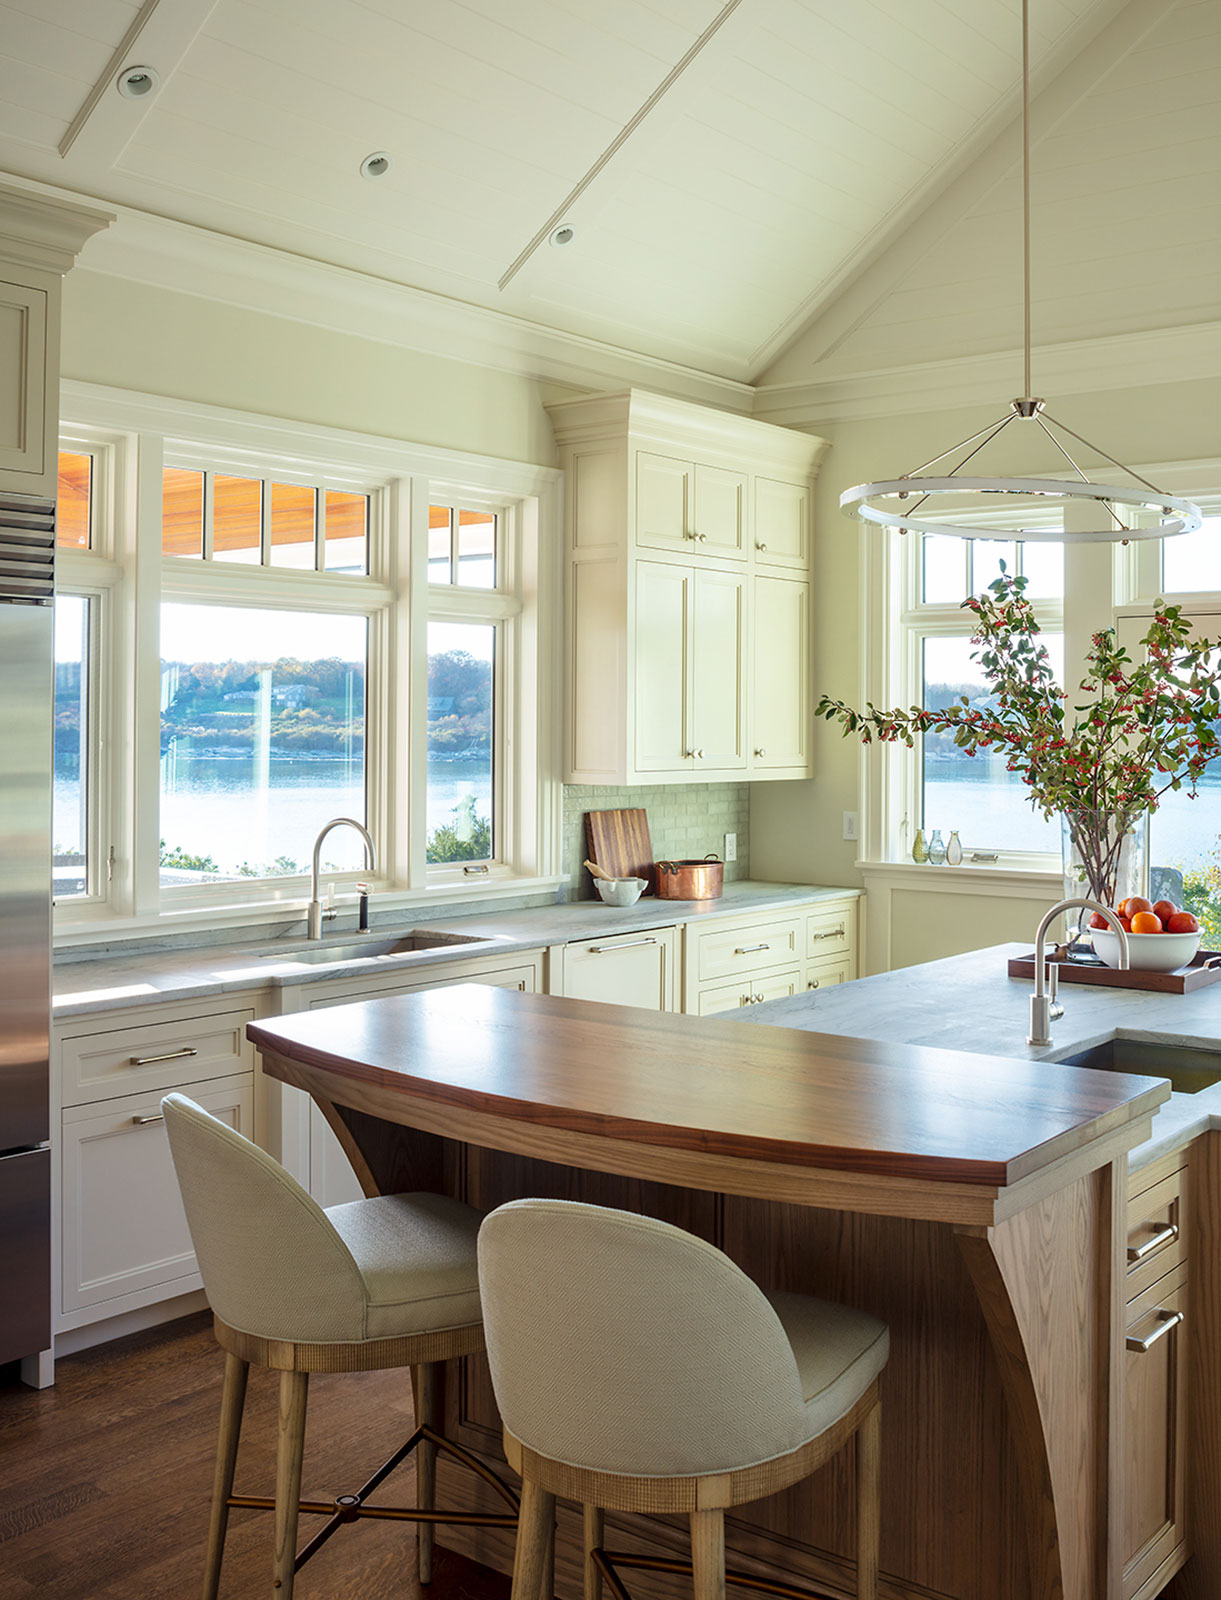 Custom Coastal kitchen by WKP Construction